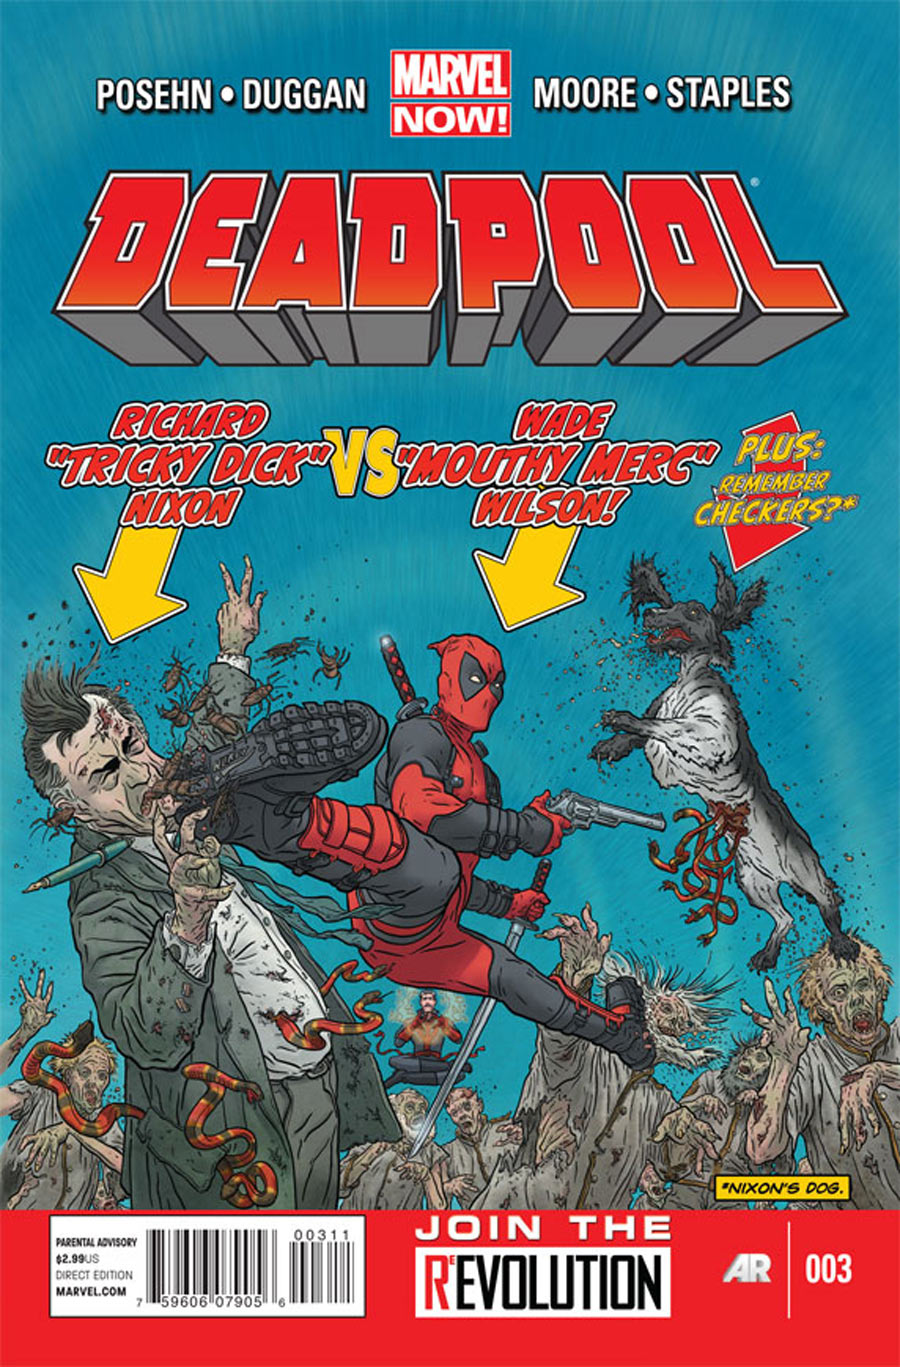 Deadpool Vol. 3 #3